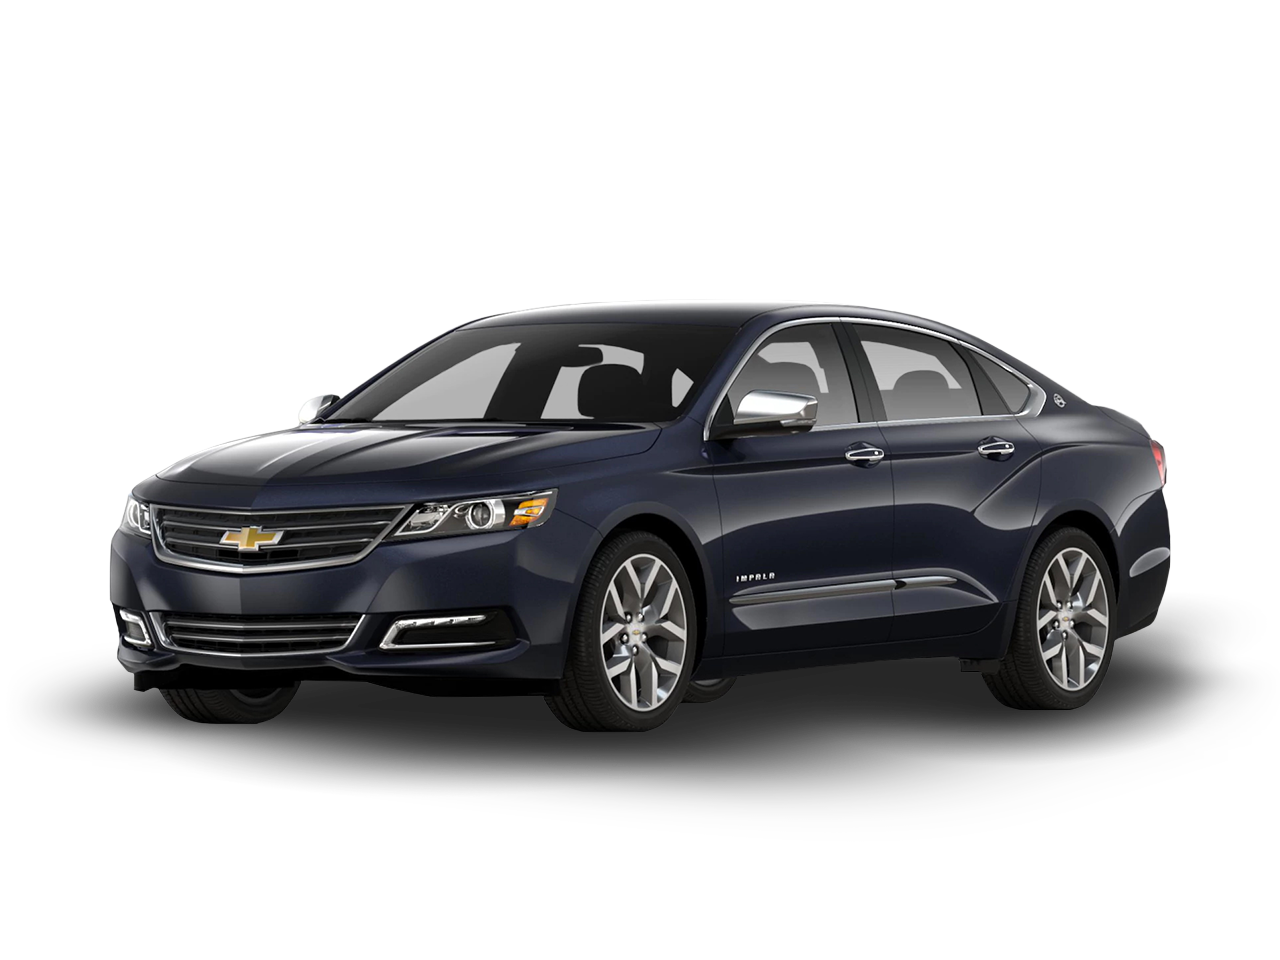 2018 Chevrolet Png Unique 2018 On 2018 Chevrolet Png